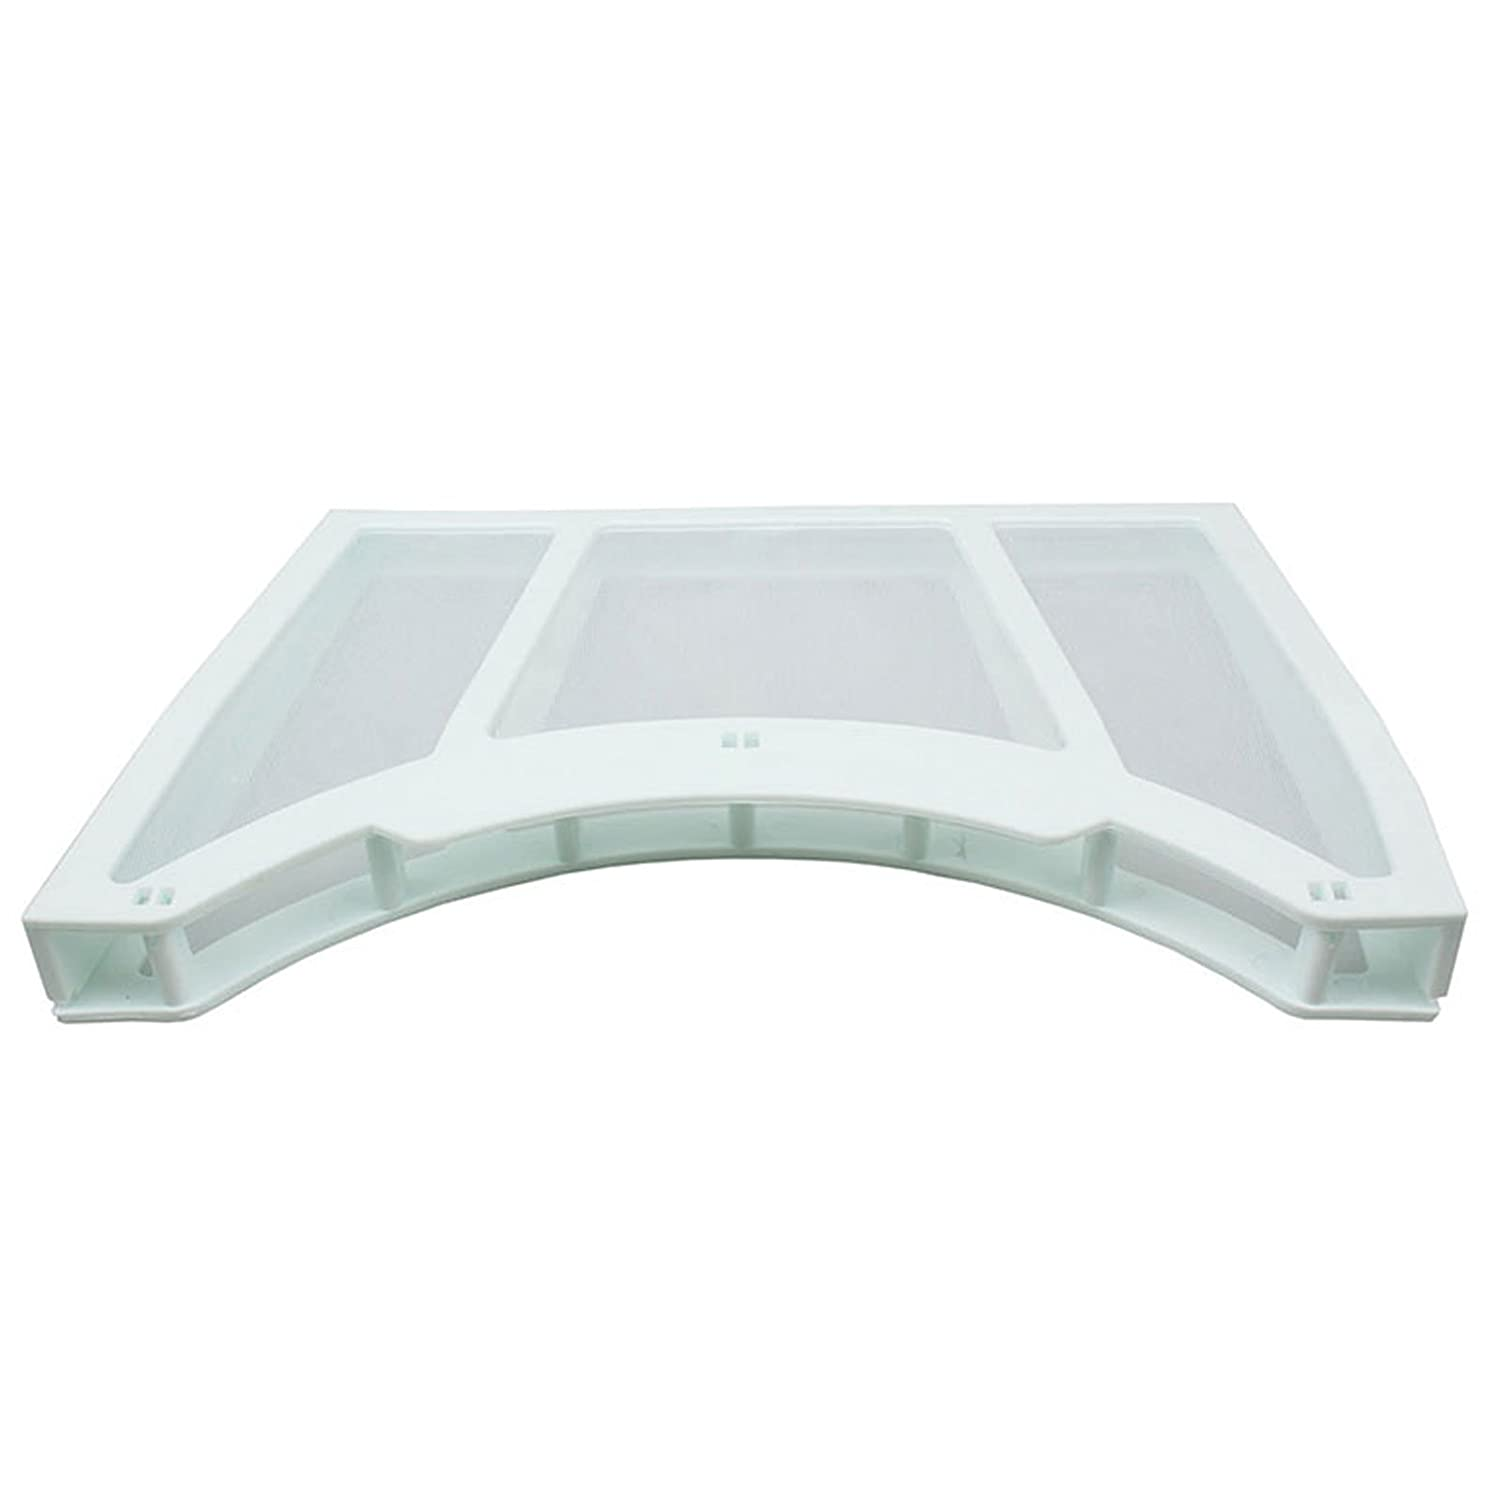 First4Spares Hinged Lint Fluff Cage Filter Screen for White Knight C72AW, C75CW, C767C & C77AB Tumble Dryers